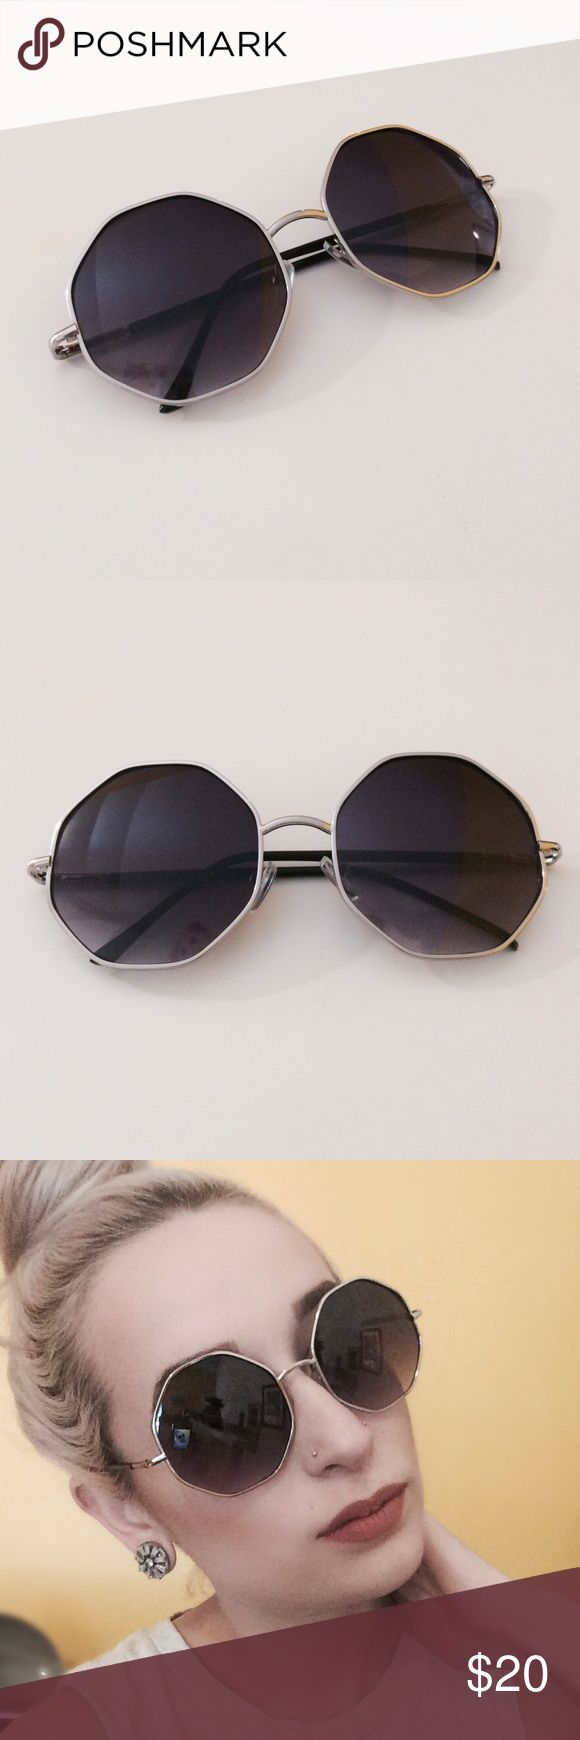 🎉Sale🎉Silver Octagon Sunglasses NWTR. Brand new in retail packaging. Silver octagon framed sunglasses with black fade lenses. A new look on a old classic! Nasty Gal listed for exposure. 10% discount when bundled with 2 or more items! ⚠️No Trades⚠️ Nasty Gal Accessories Sunglasses